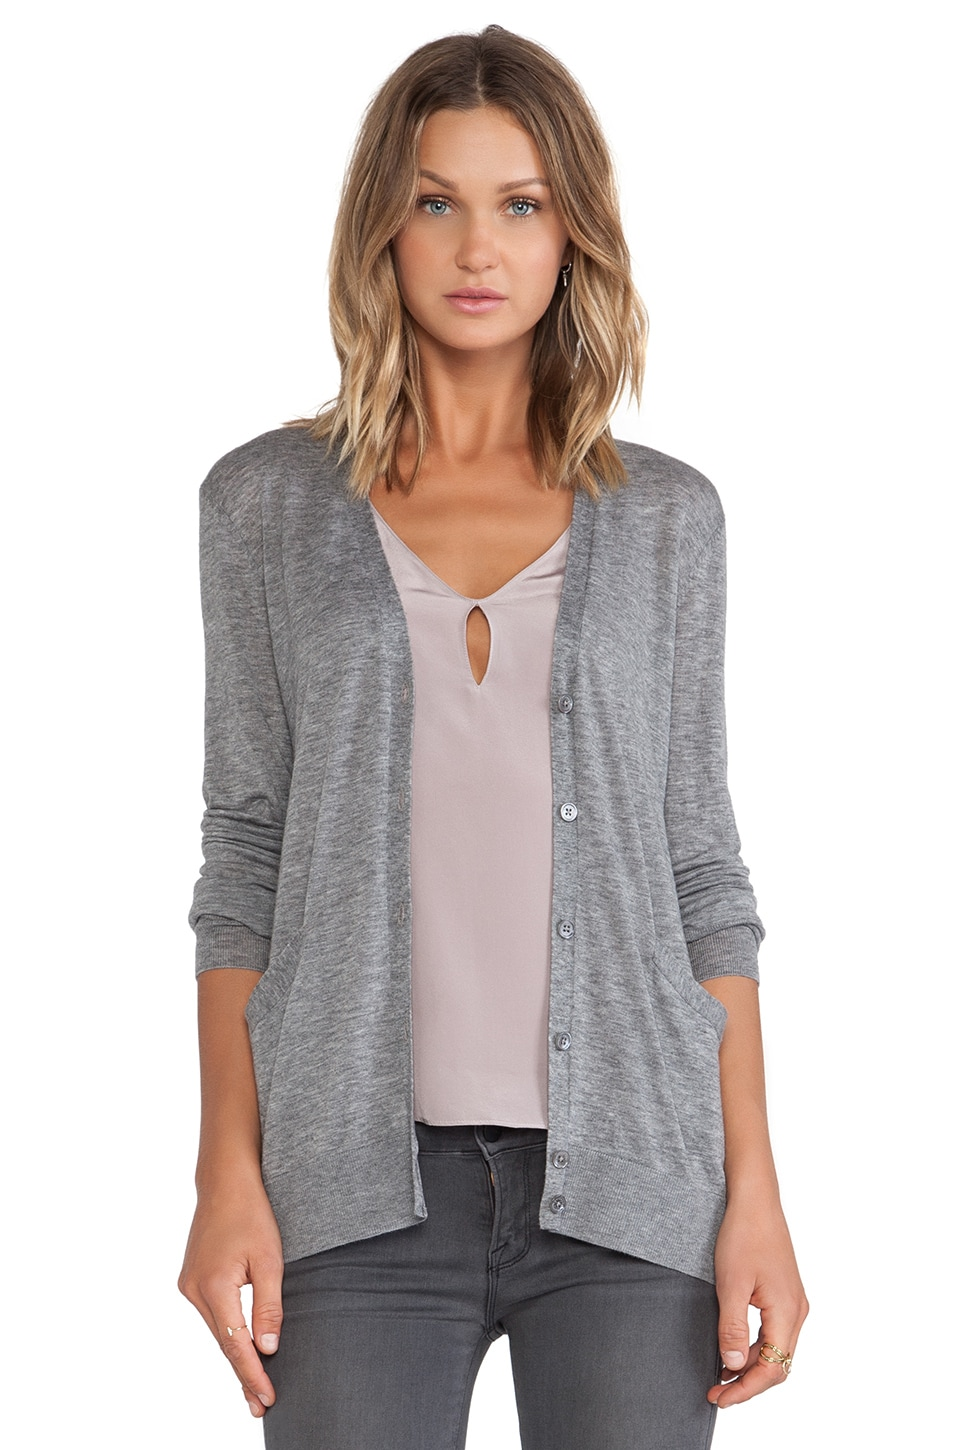 Equipment Sullivan Classic Cardigan in Heather Grey